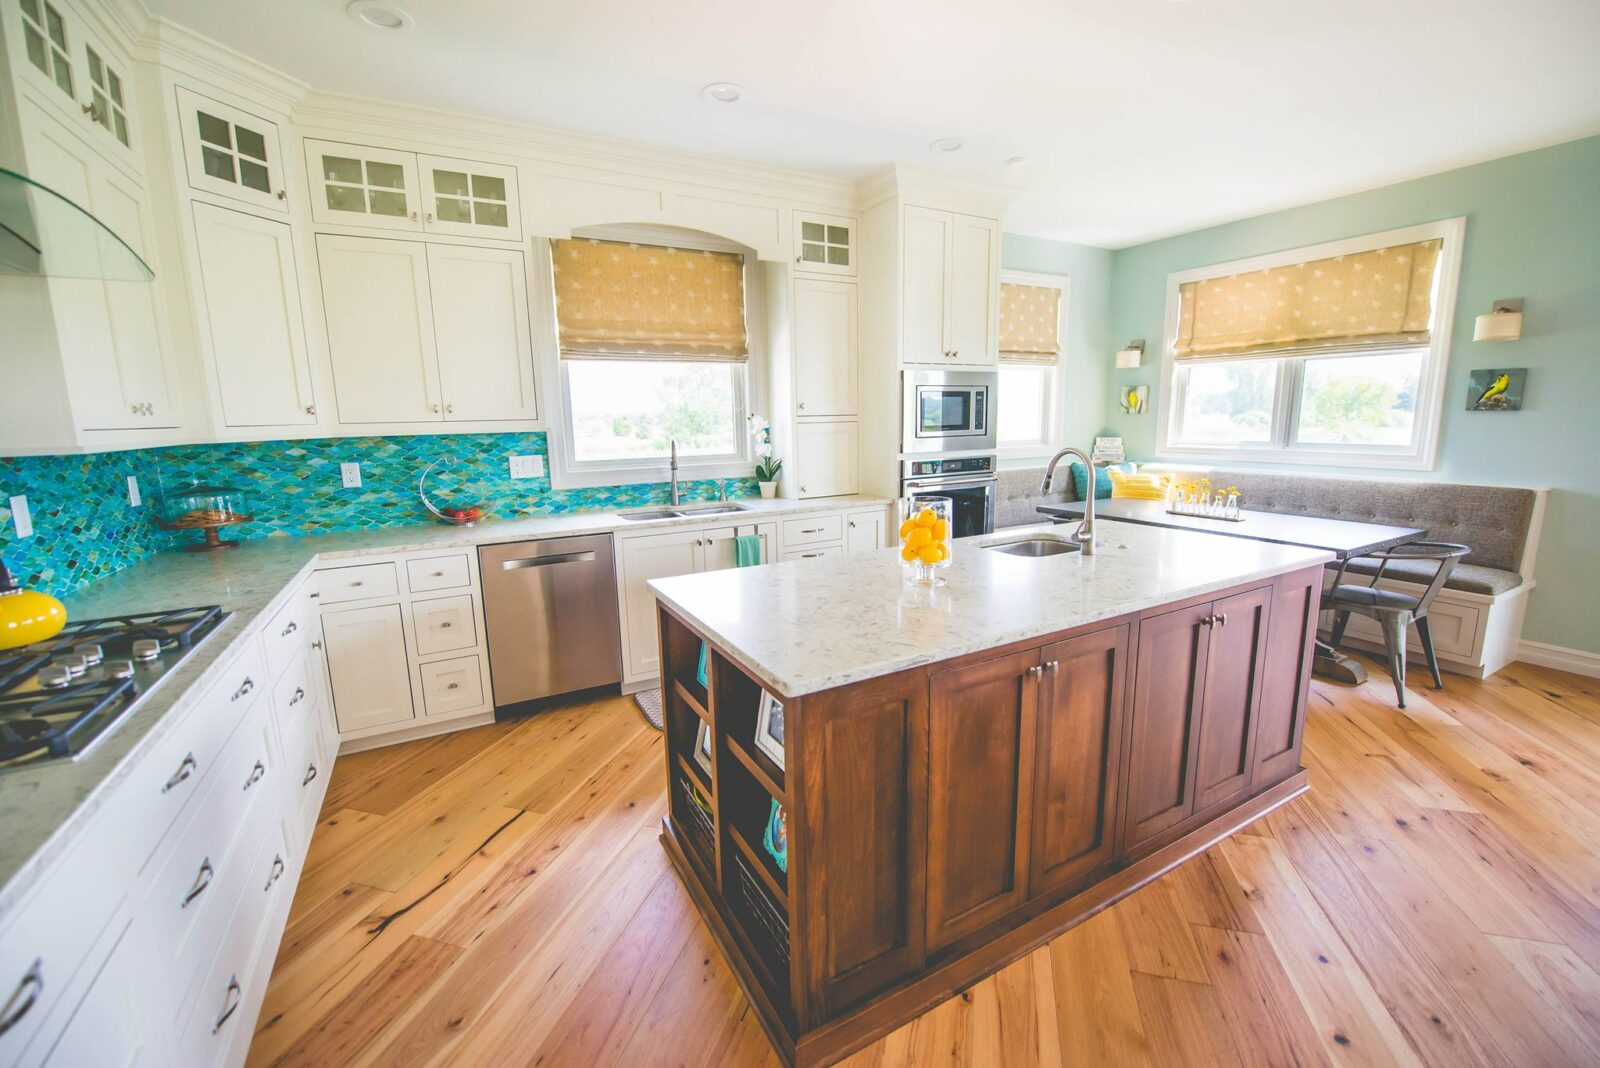 Kitchen cabinets and countertop   H&R Carpets and Flooring